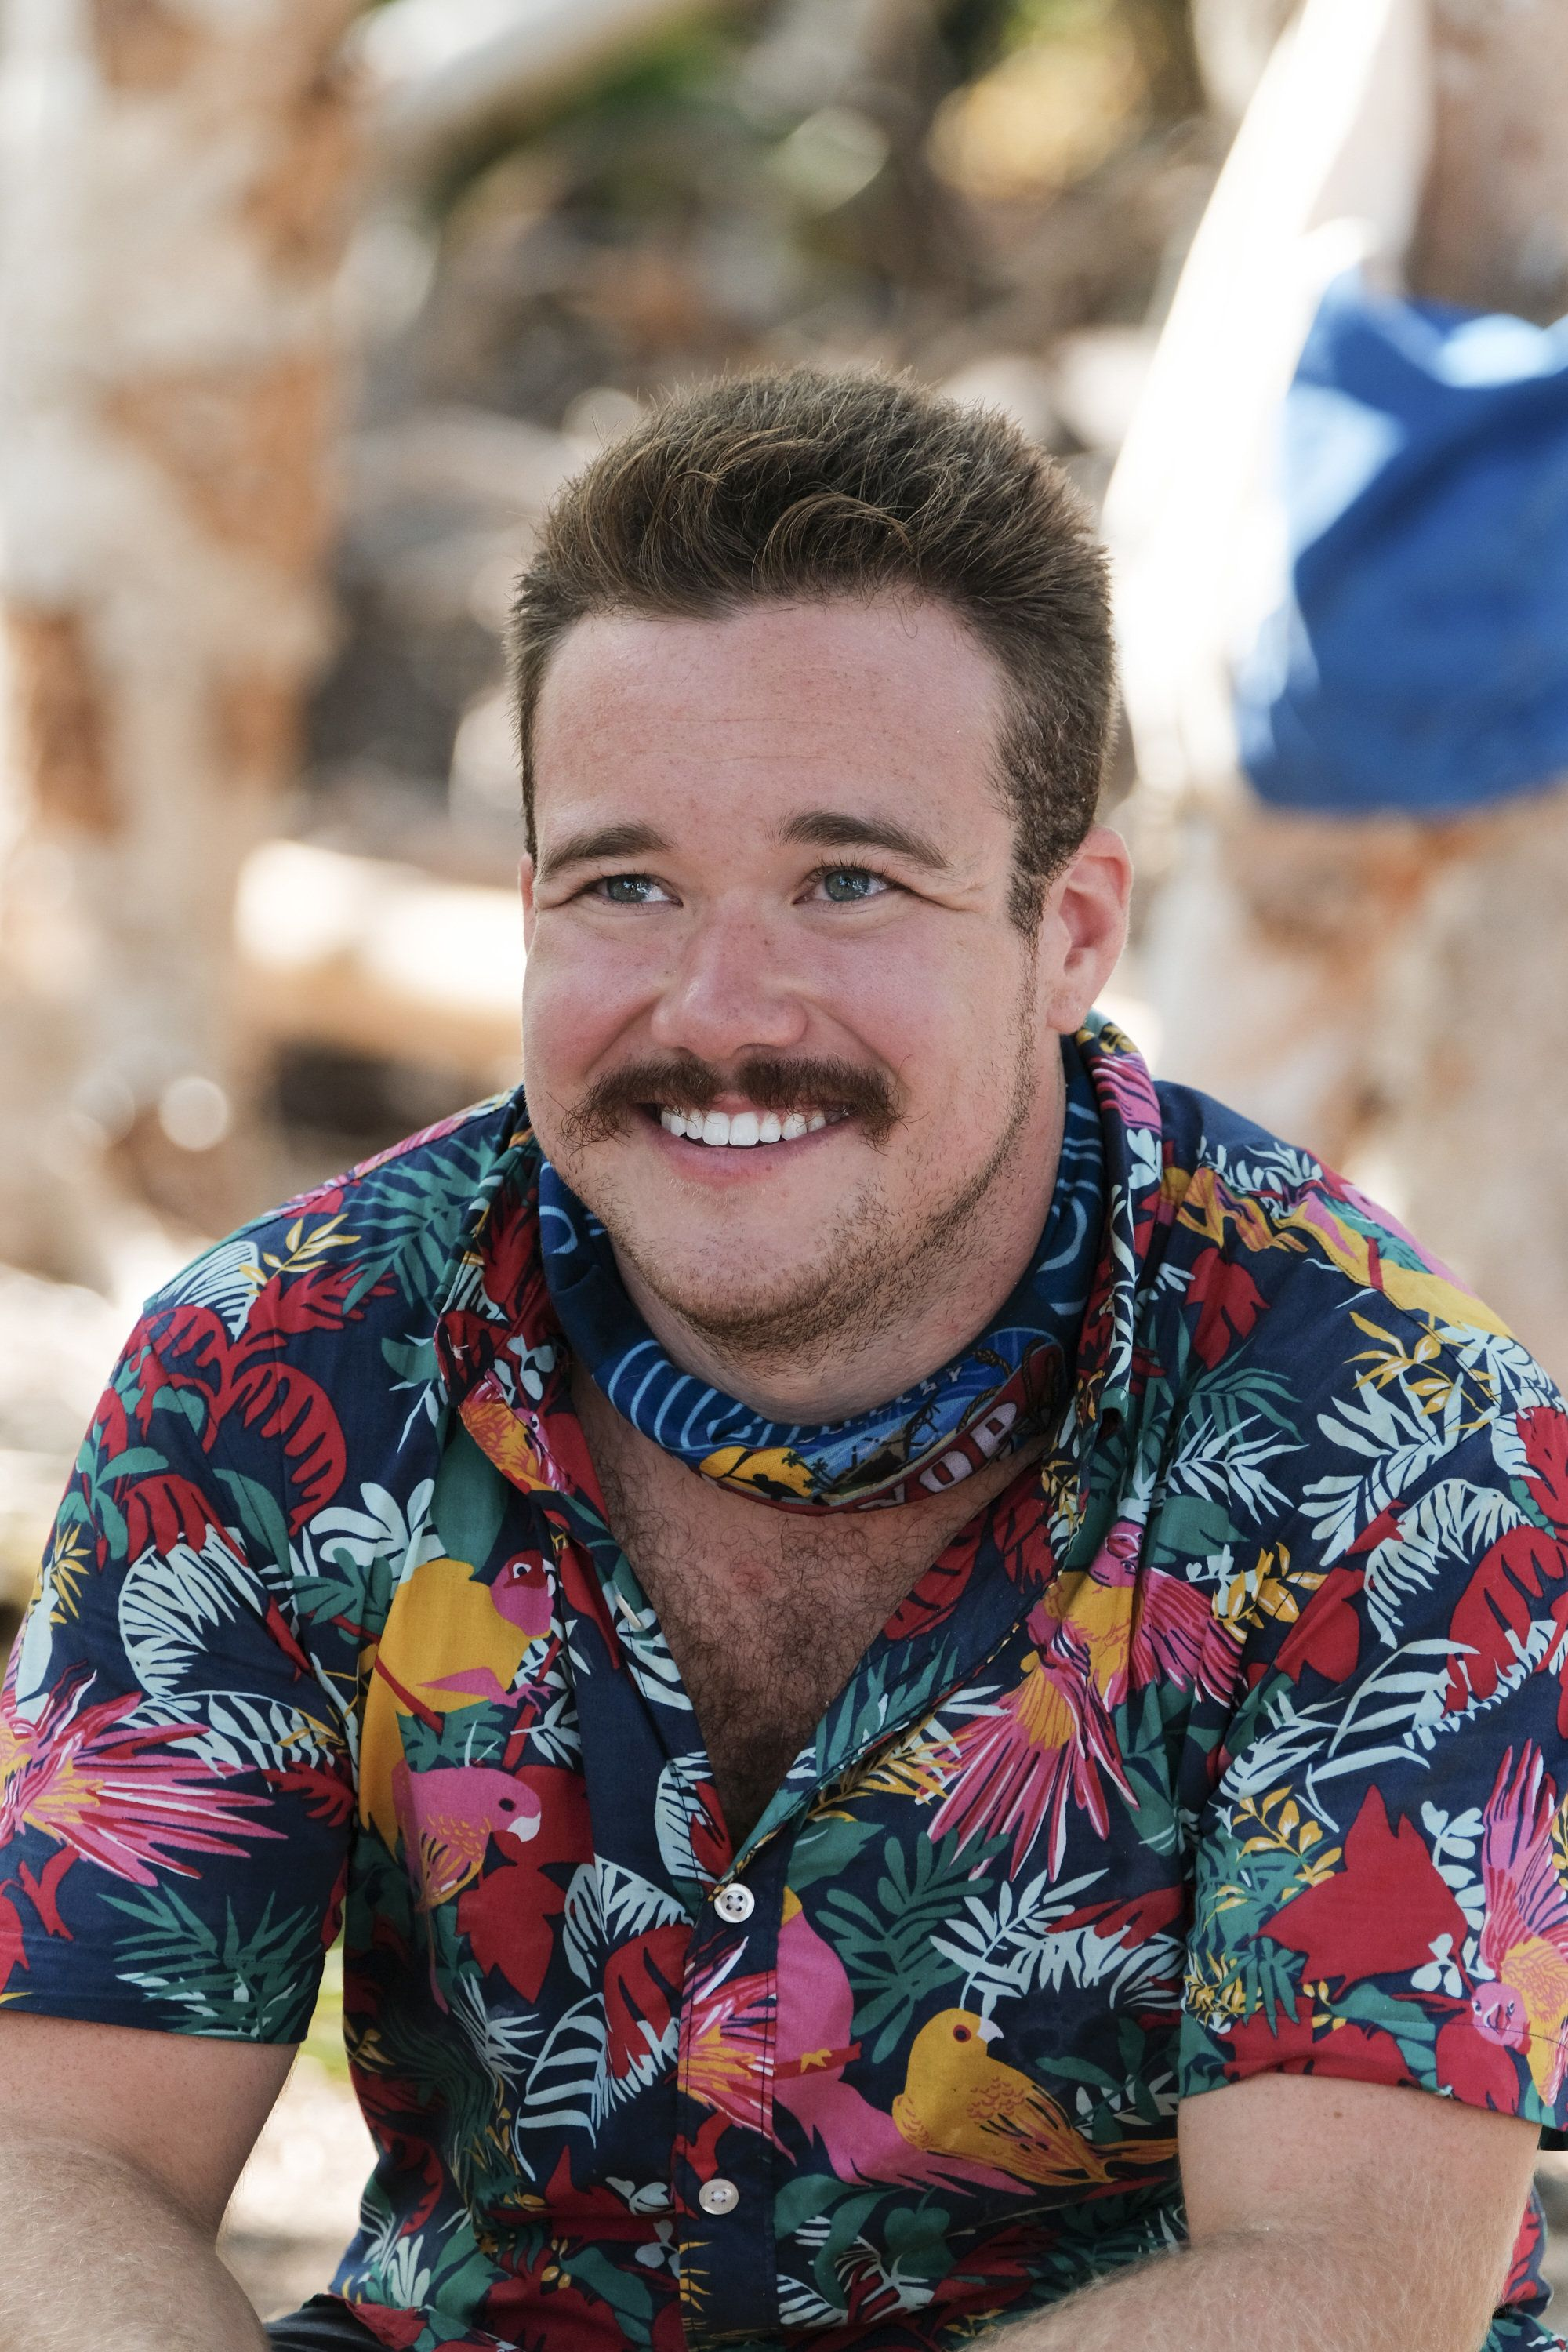 Zeke Smith was outed as transgender by Jeff Varner on Wednesday night's episode of